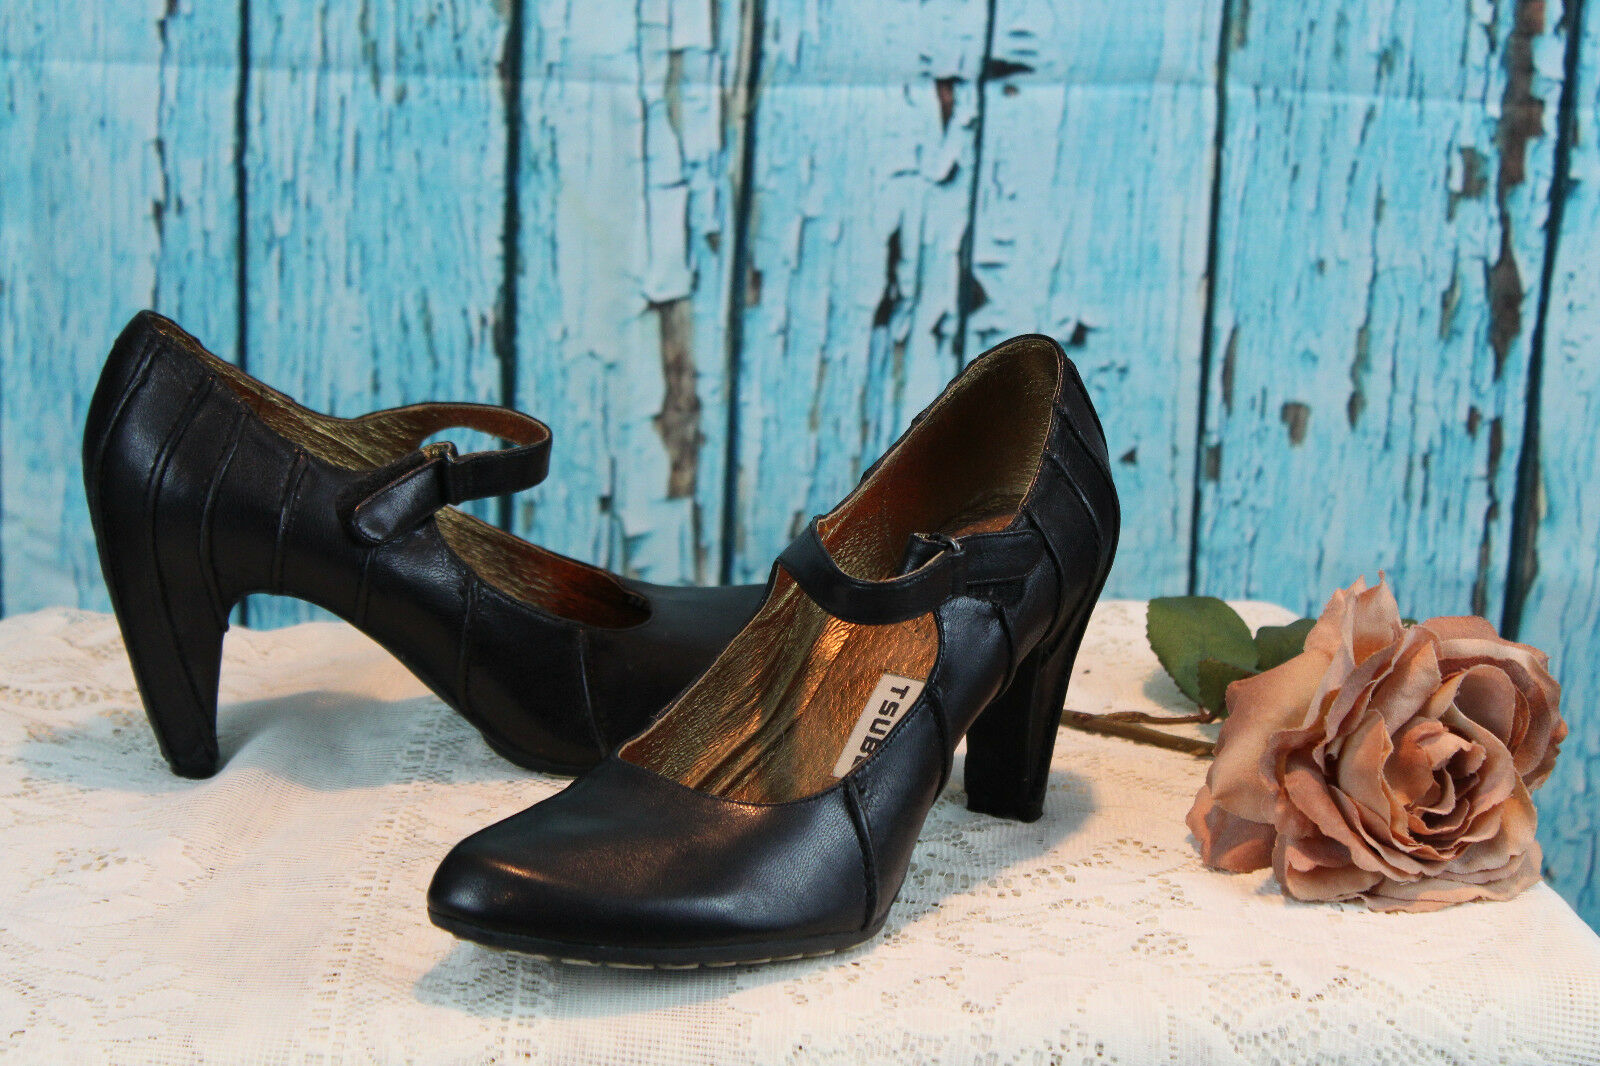 Tsubo Mary schwarz Jane schwarz Mary Leather damen schuhe 9.5 7c9b45